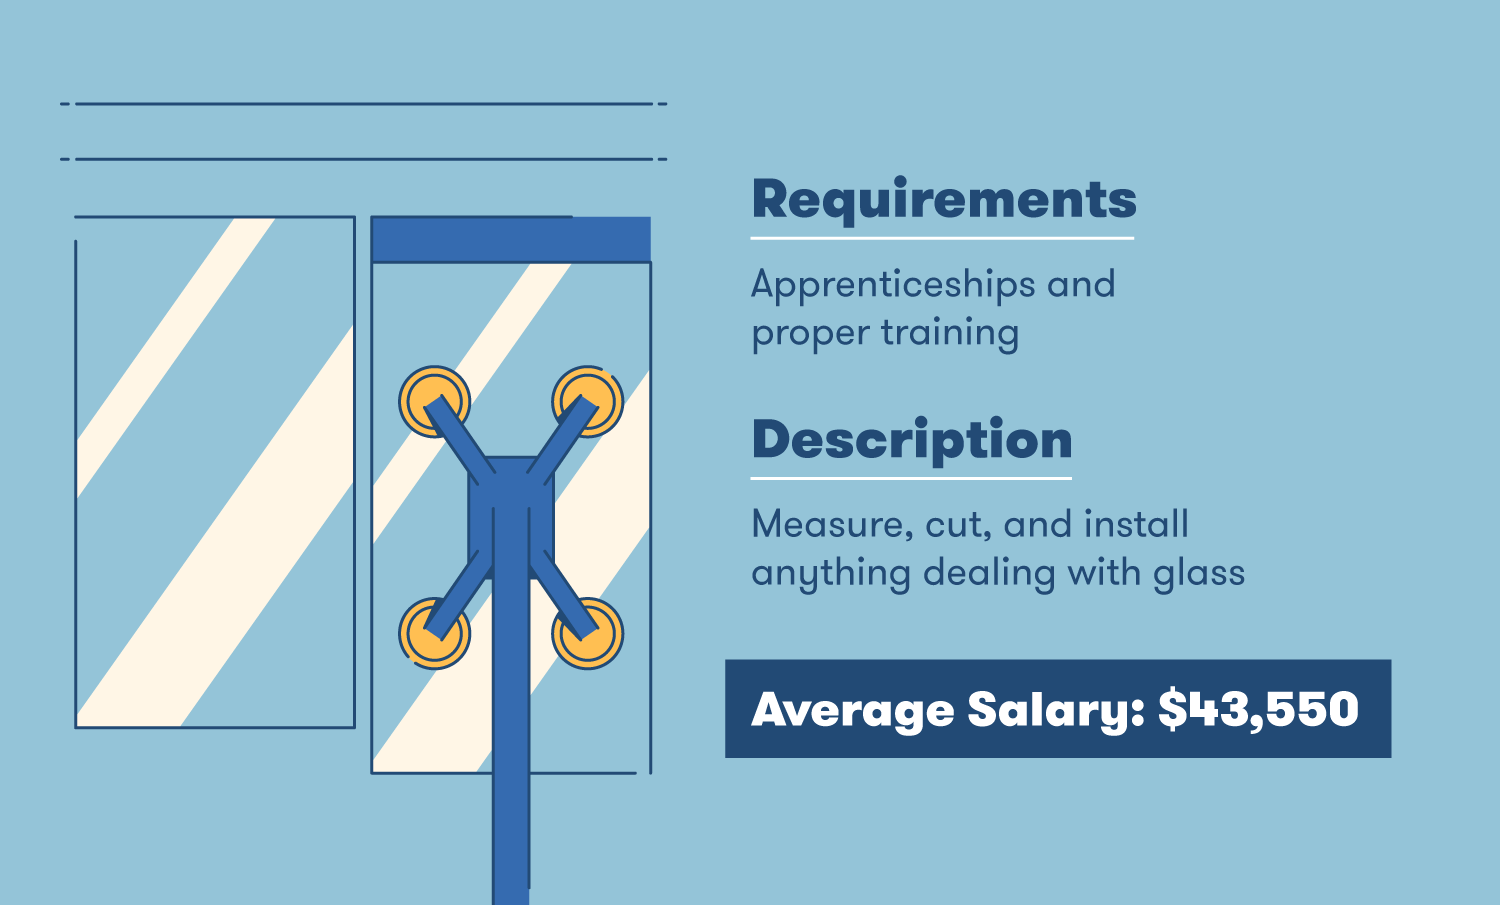 glazier requirements description and salary